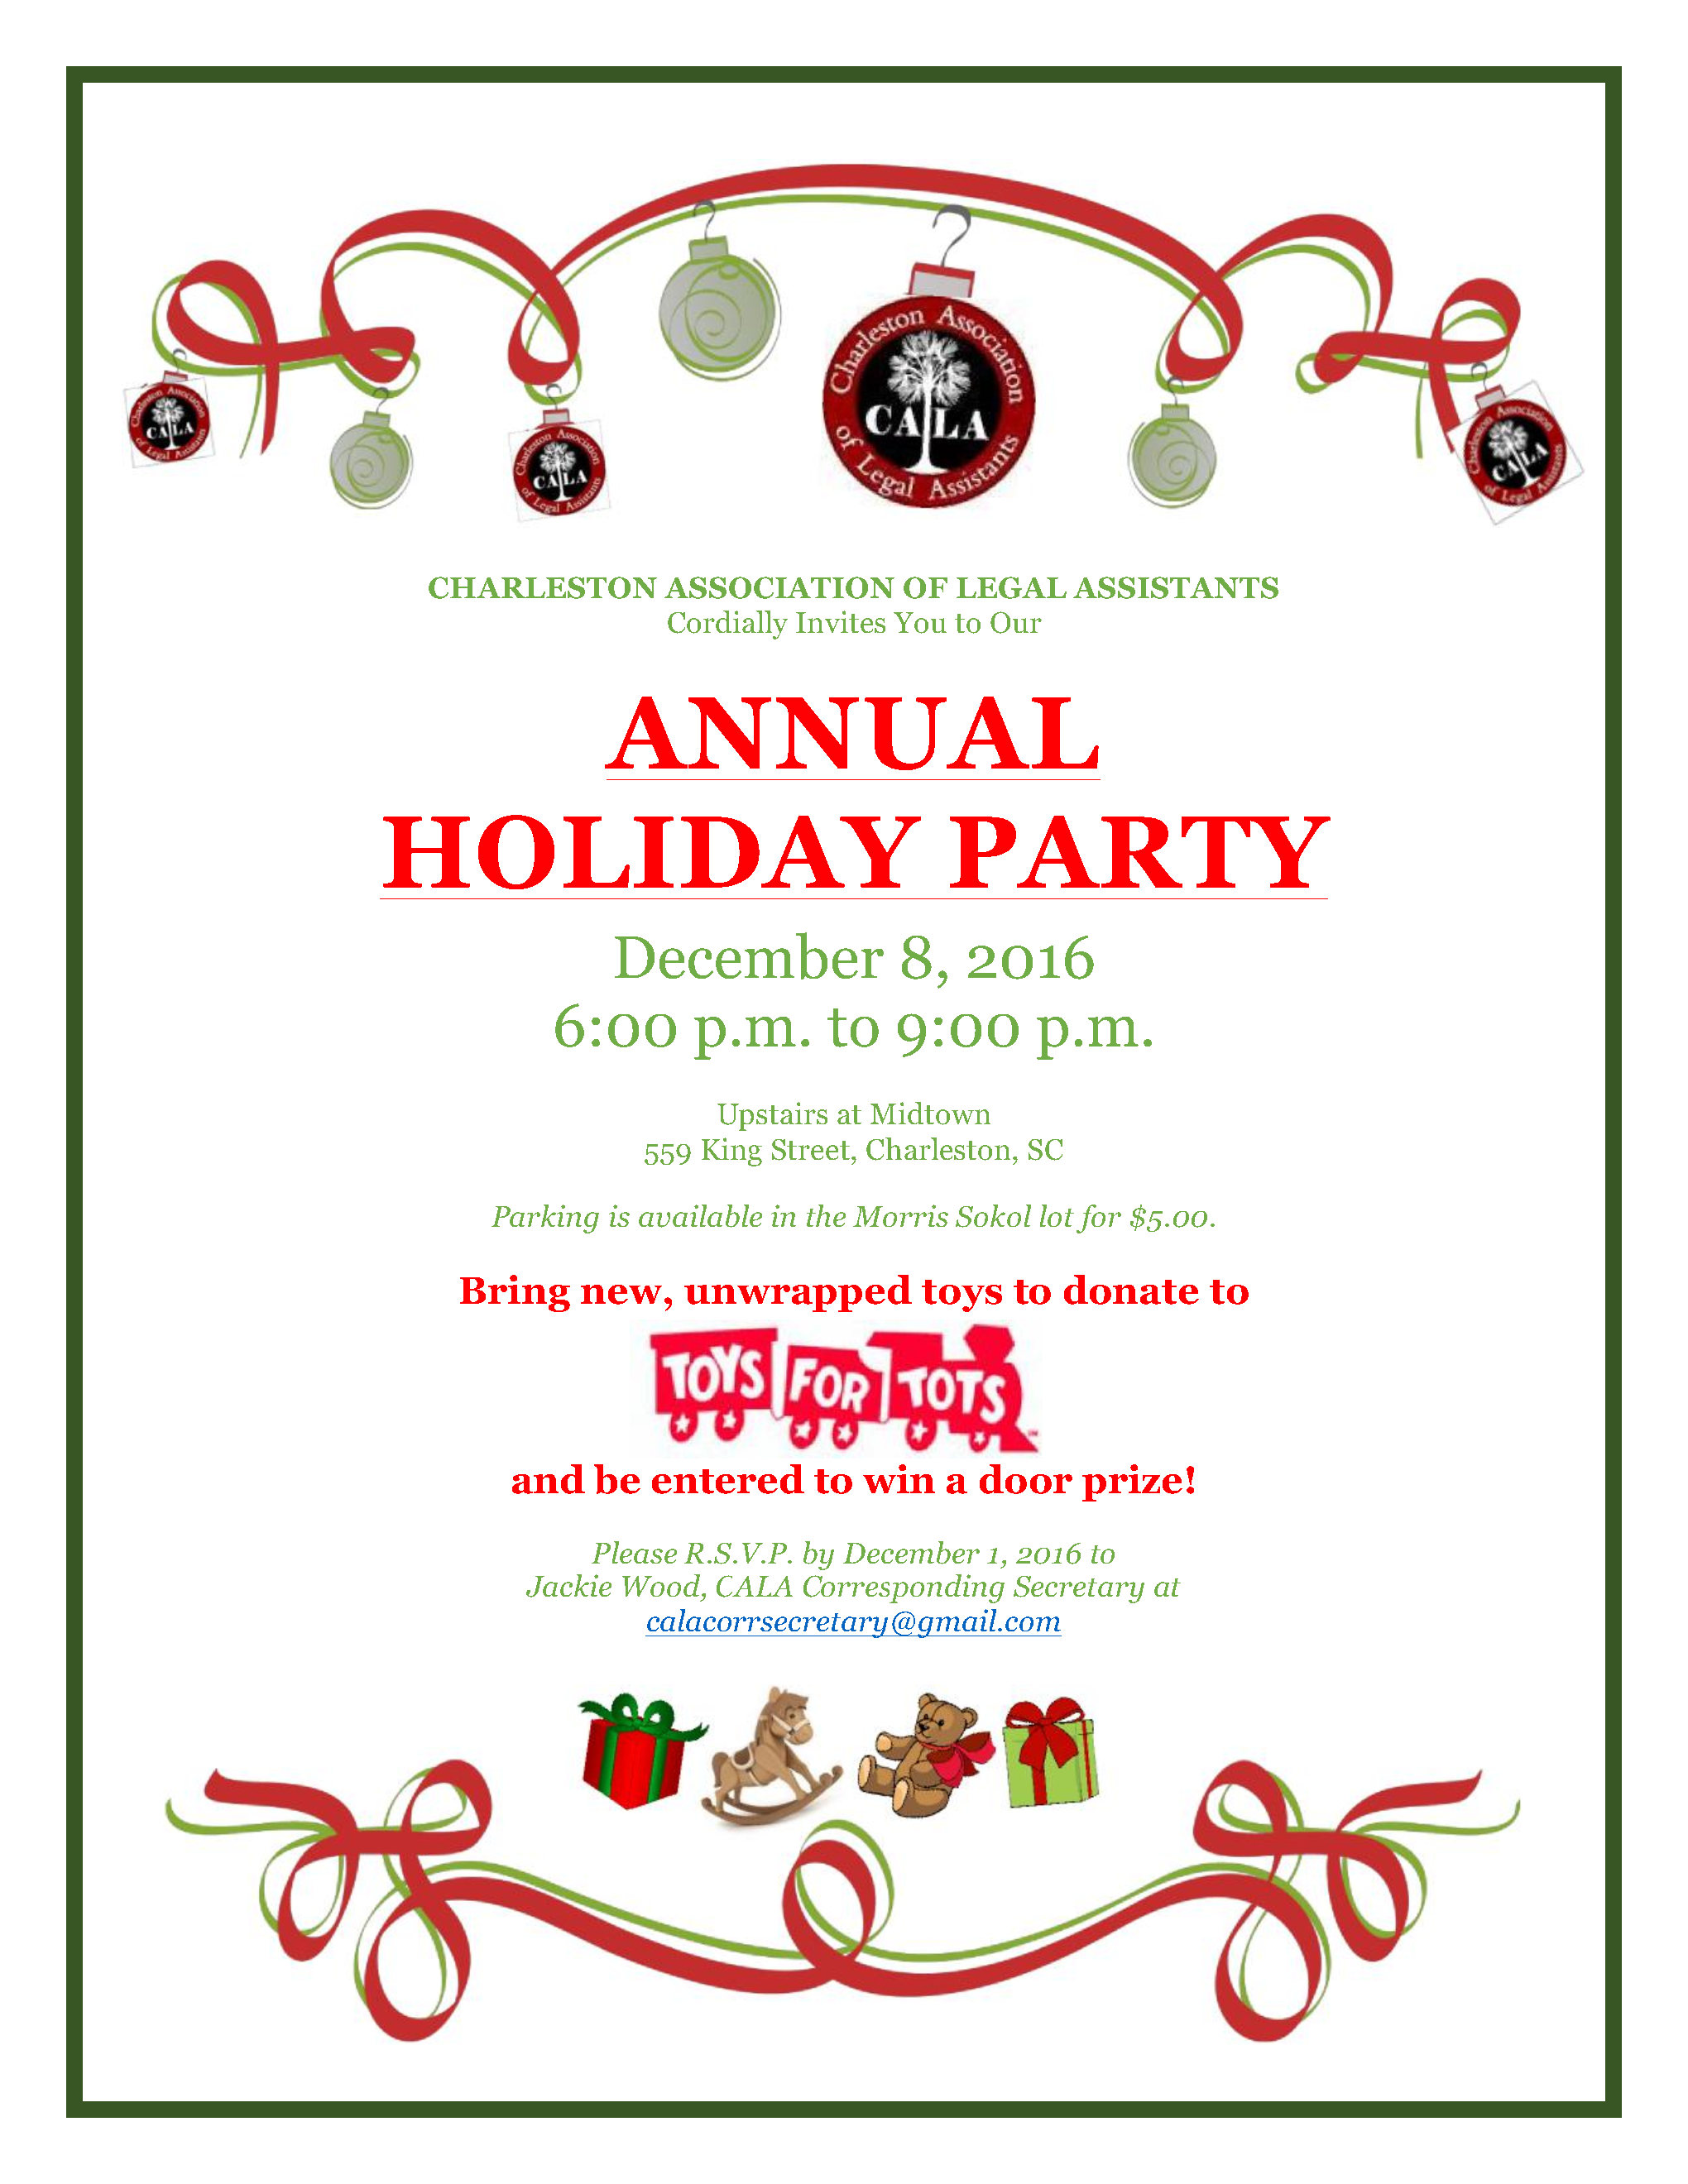 2016 ANNUAL CALA Holiday Party! – Charleston Association of Legal ...